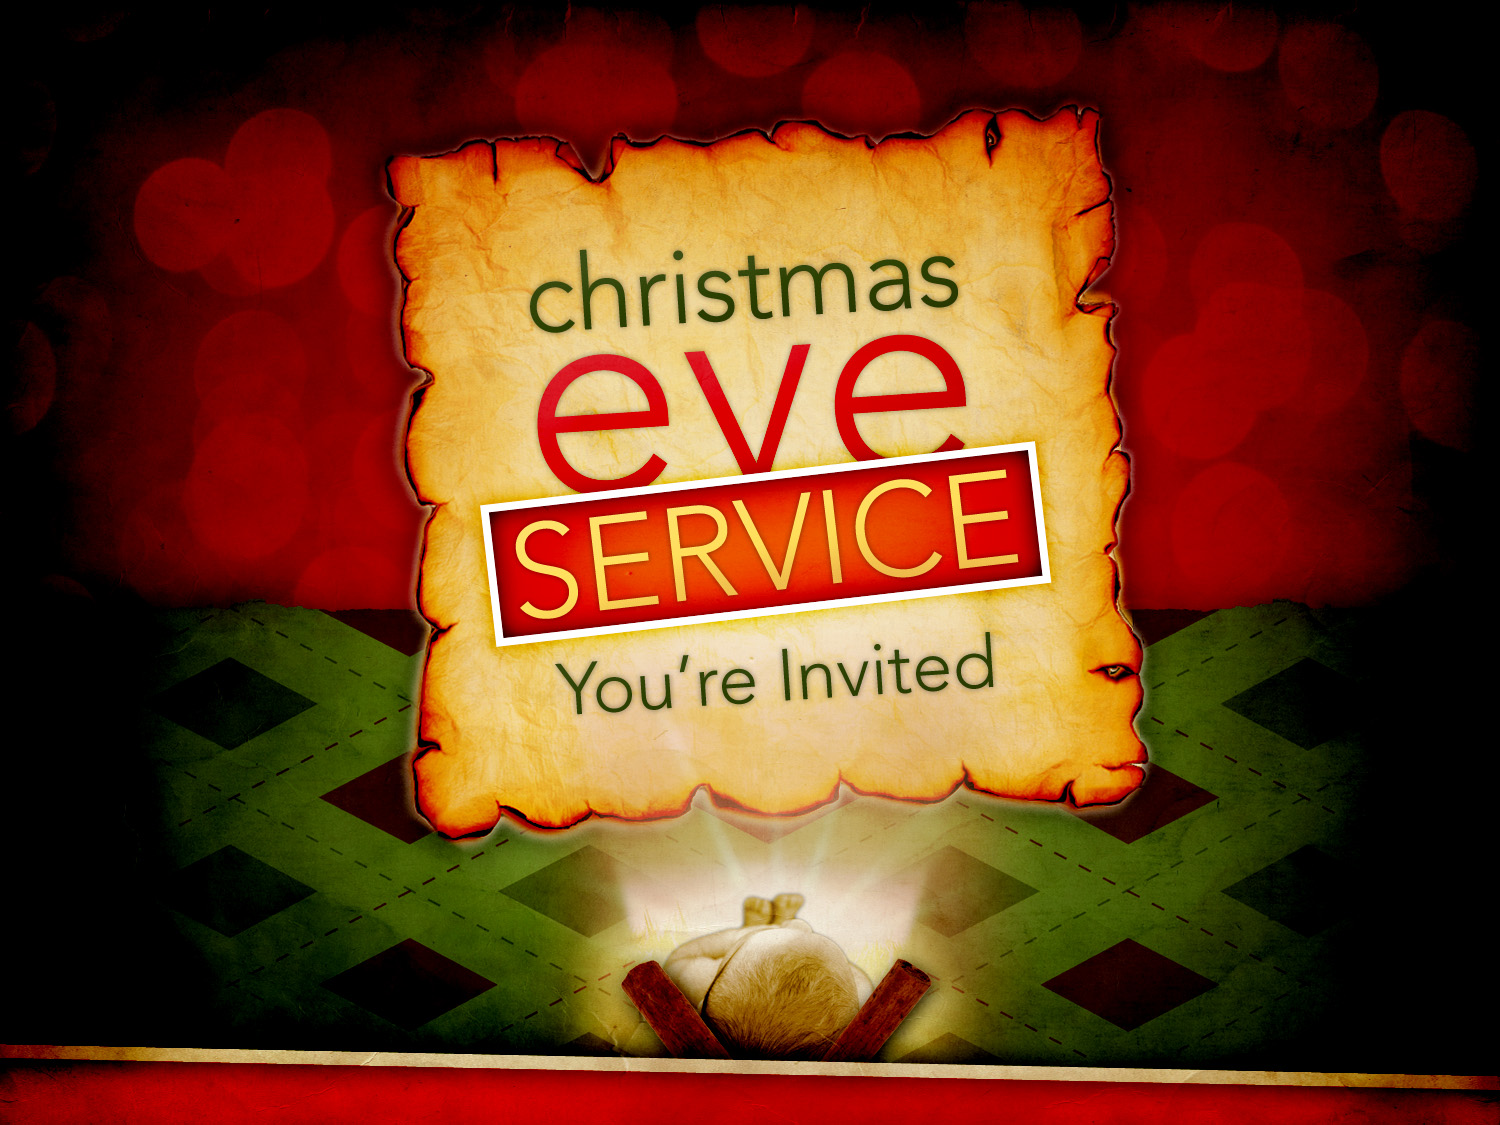 Christmas Eve Services.Christmas Eve Service Vanderbilt News Vanderbilt University